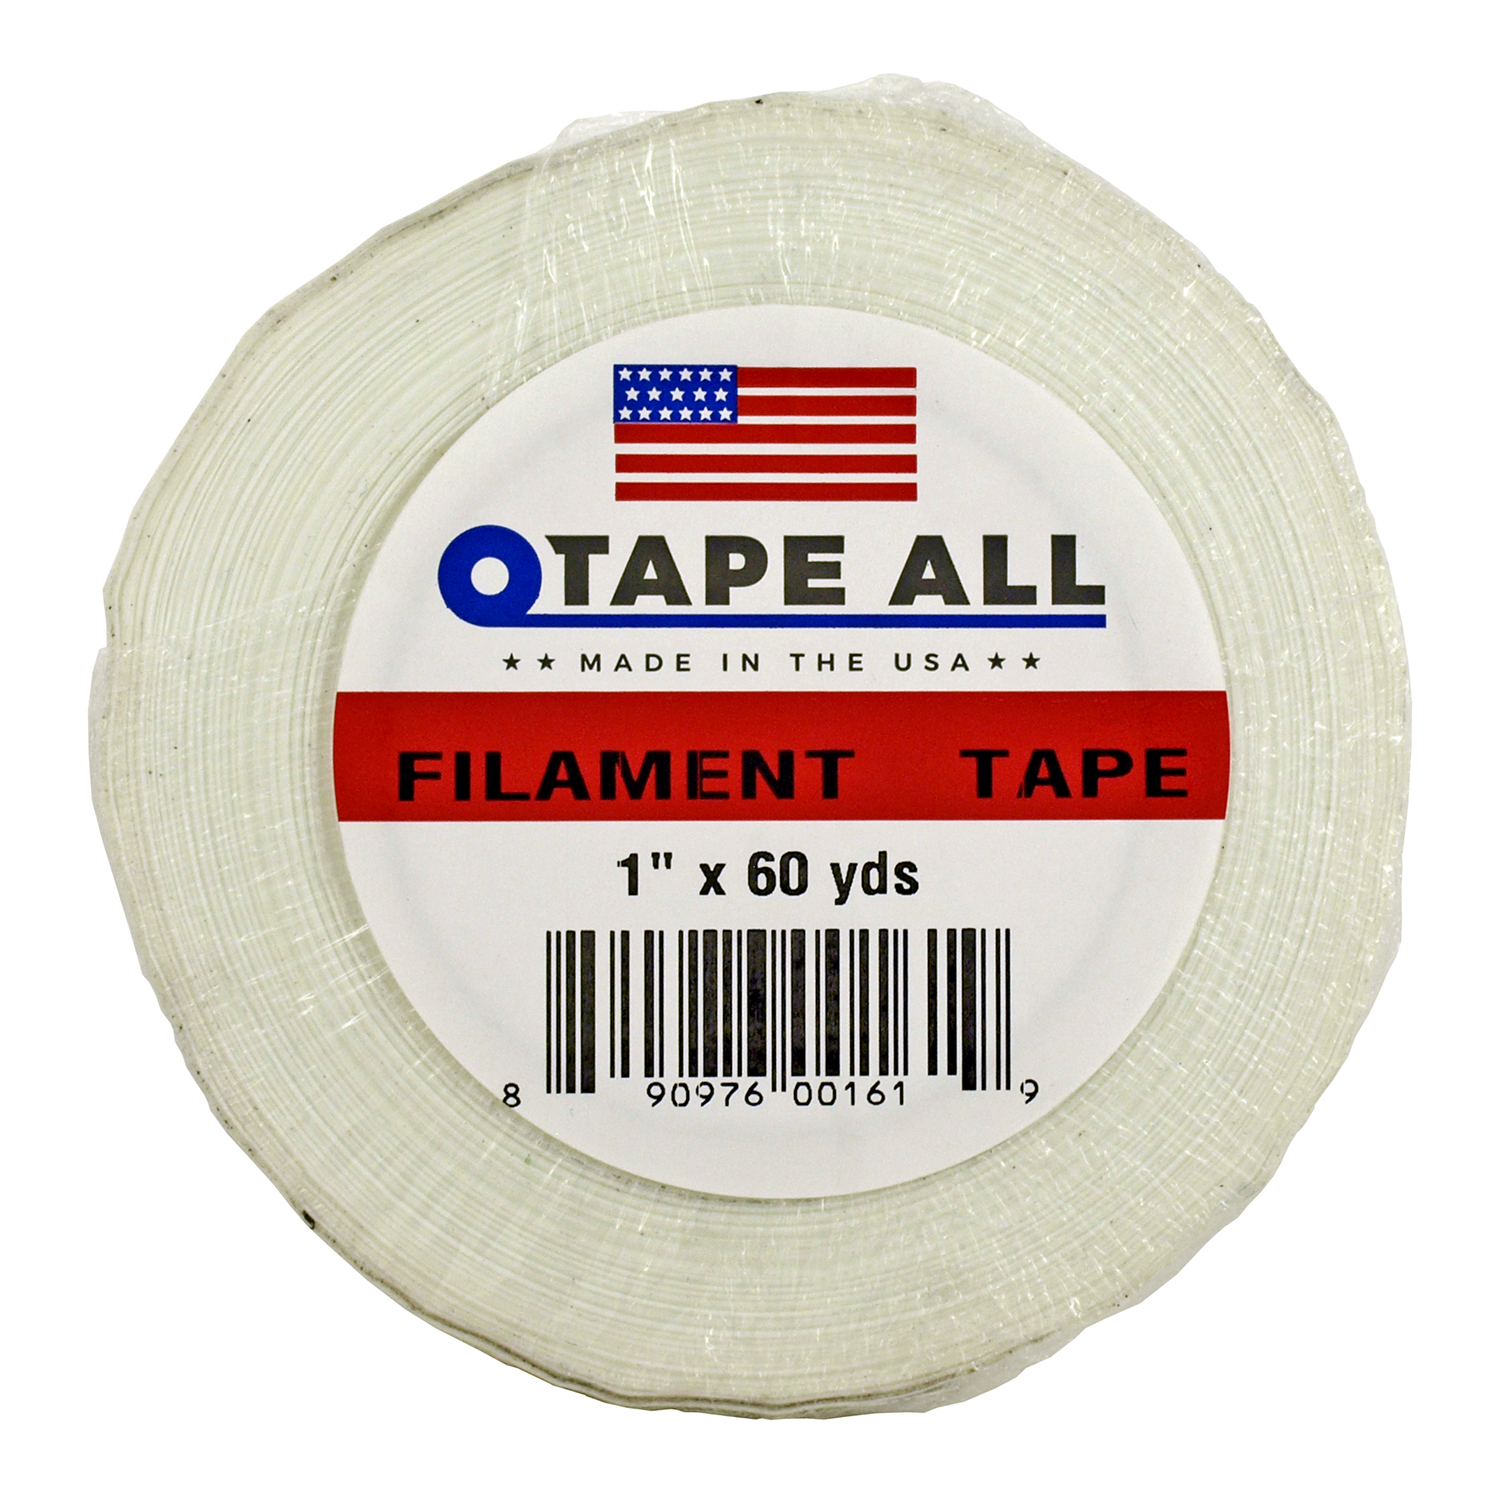 1 in x 60yds. Filament Tape - White